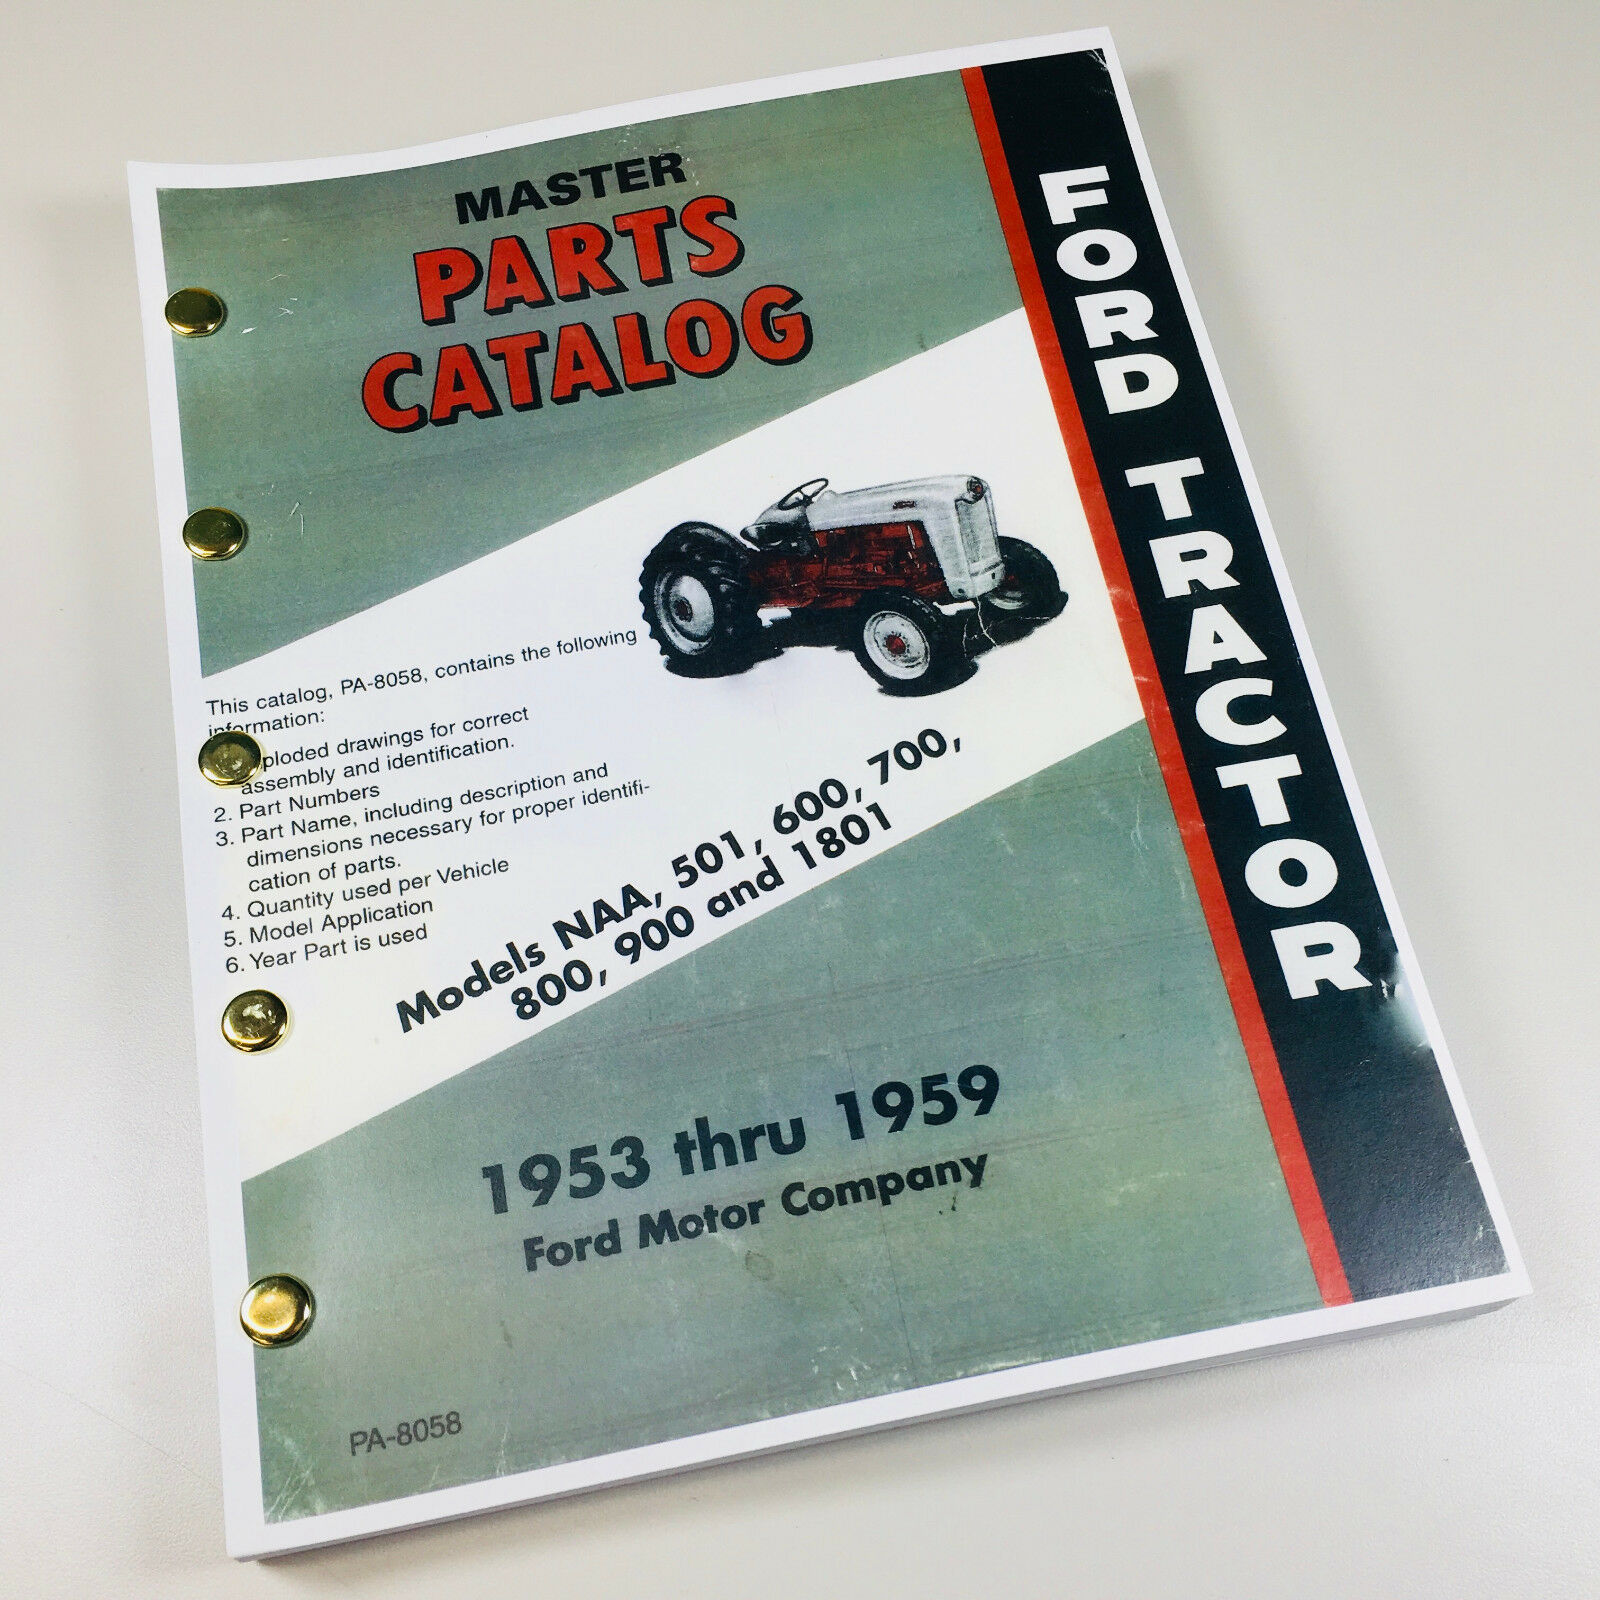 Ford Naa 501 600 700 800 900 1801 Tractor 1953-1959 Master Parts Manual  Catalog 1 of 8FREE Shipping ...